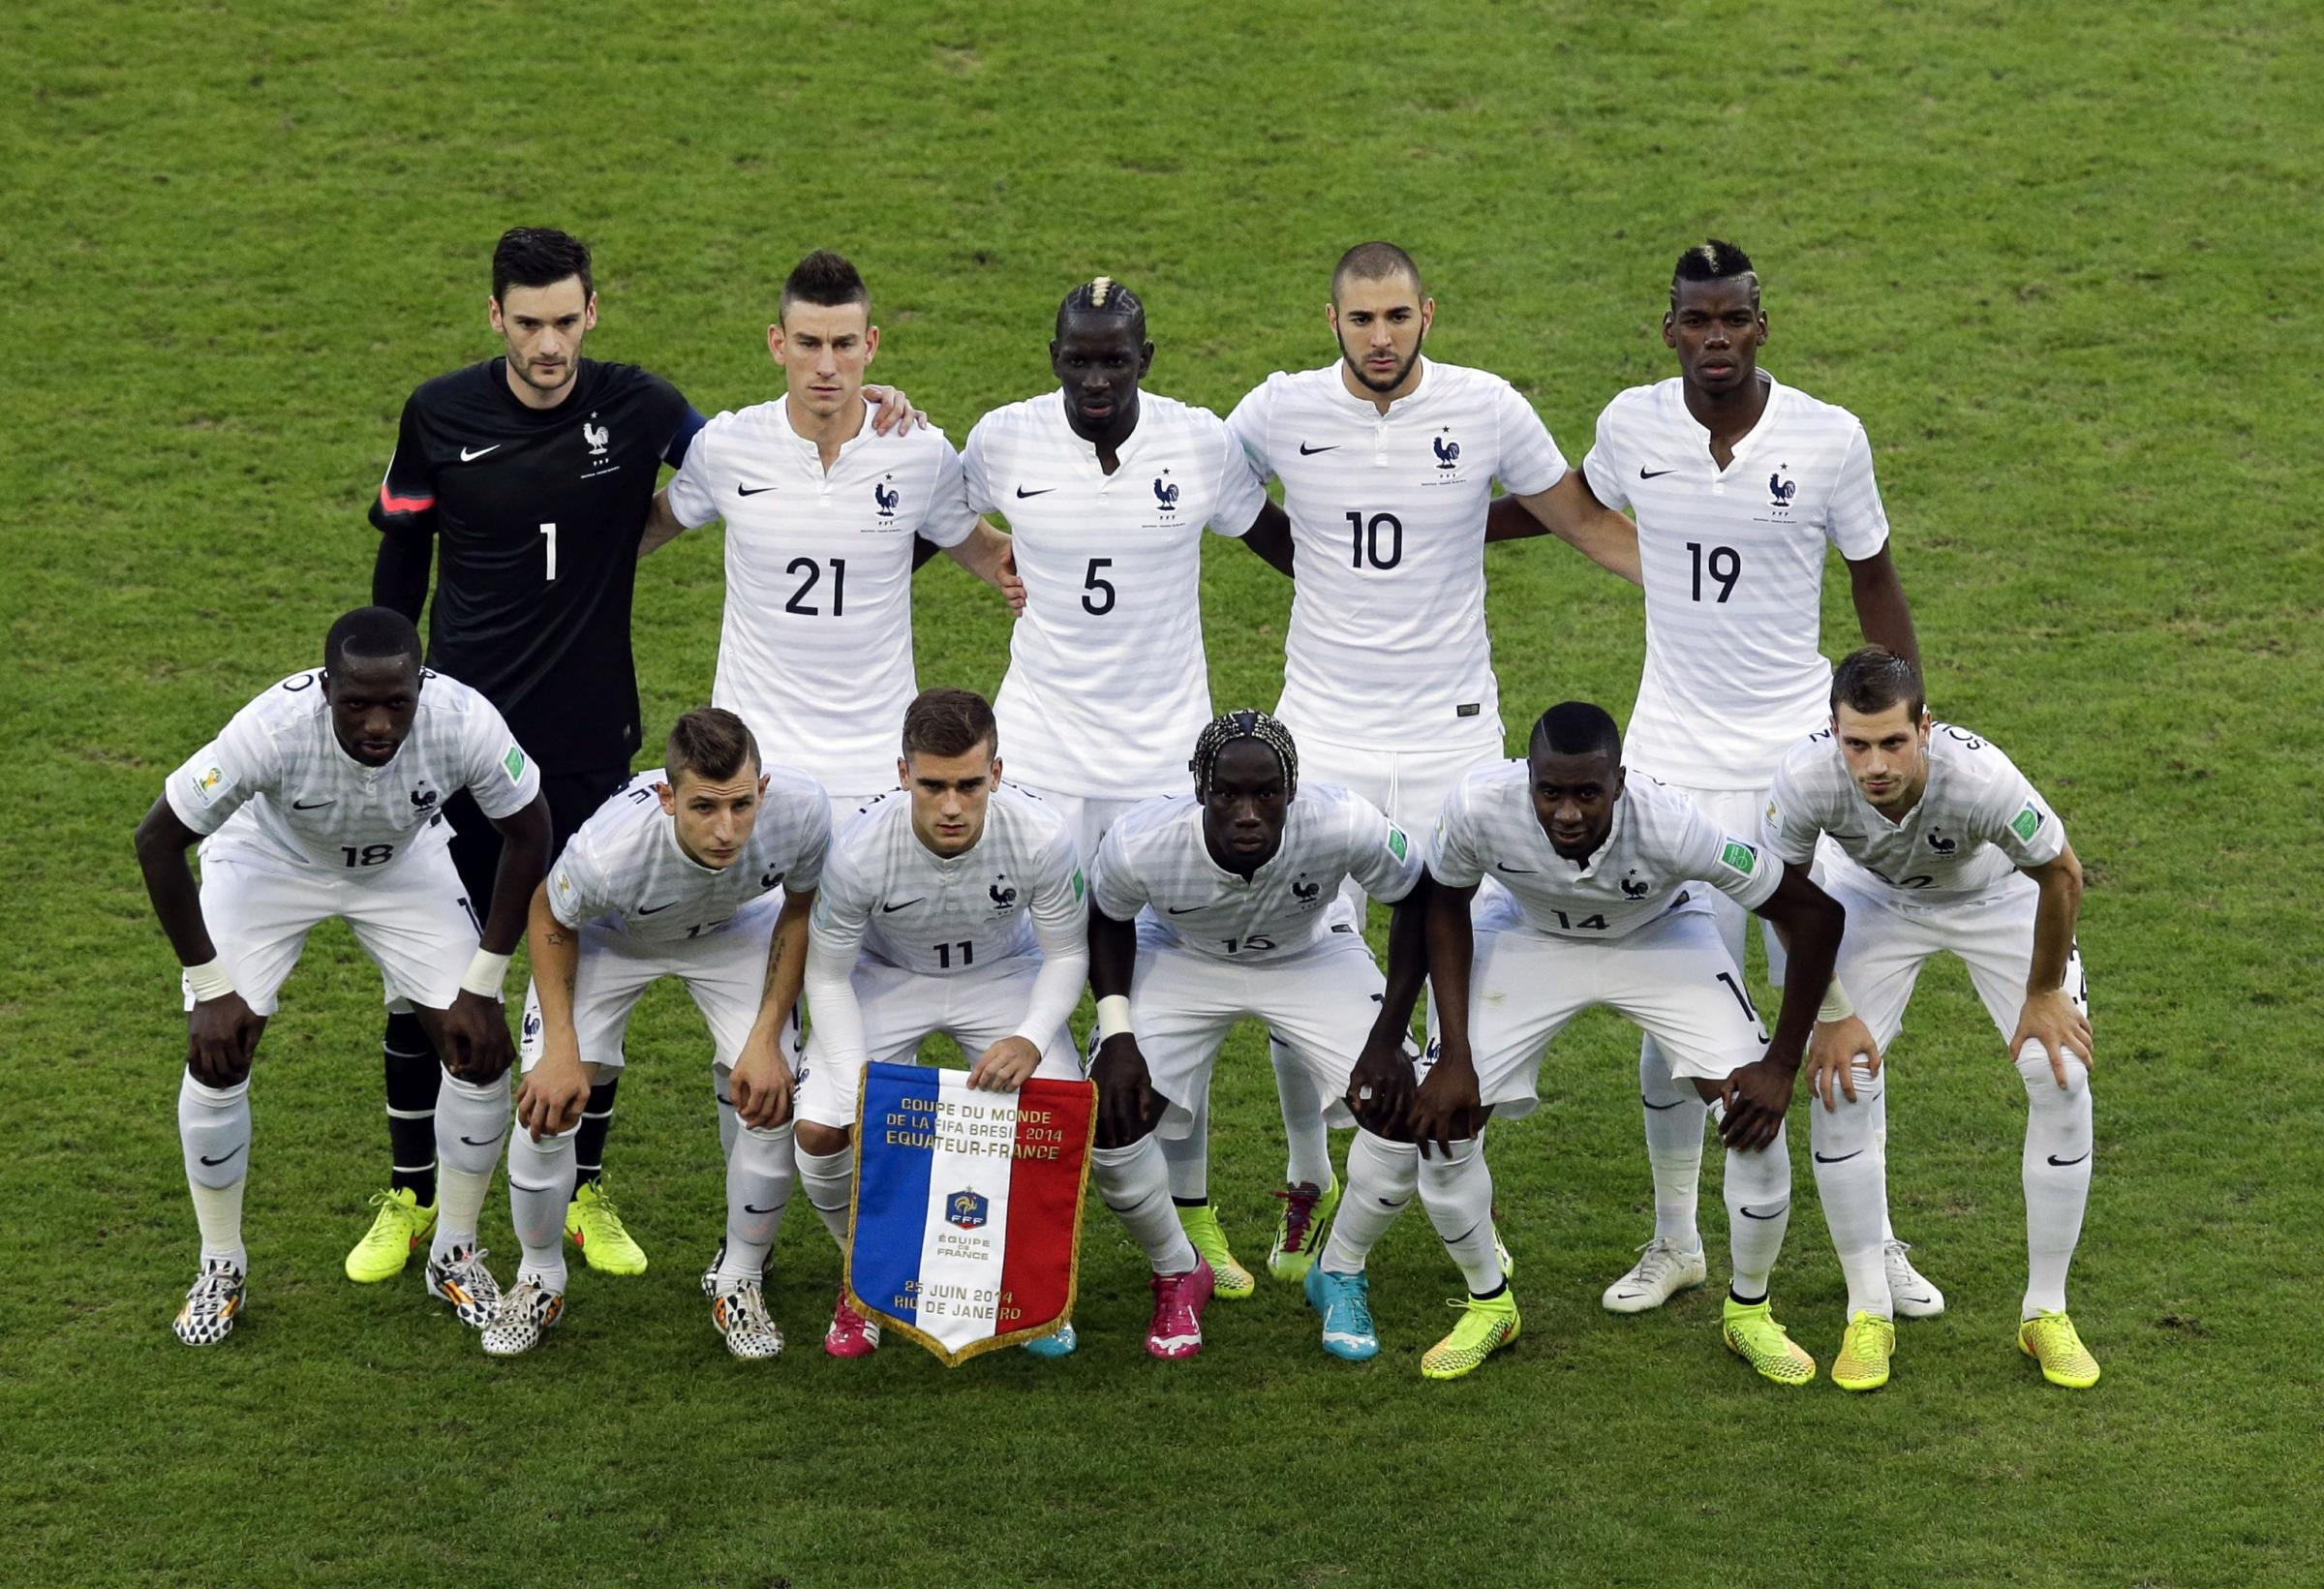 Morgan Schneiderlin, front row far right, lines up with the French team ahead of last night's draw with Ecuador